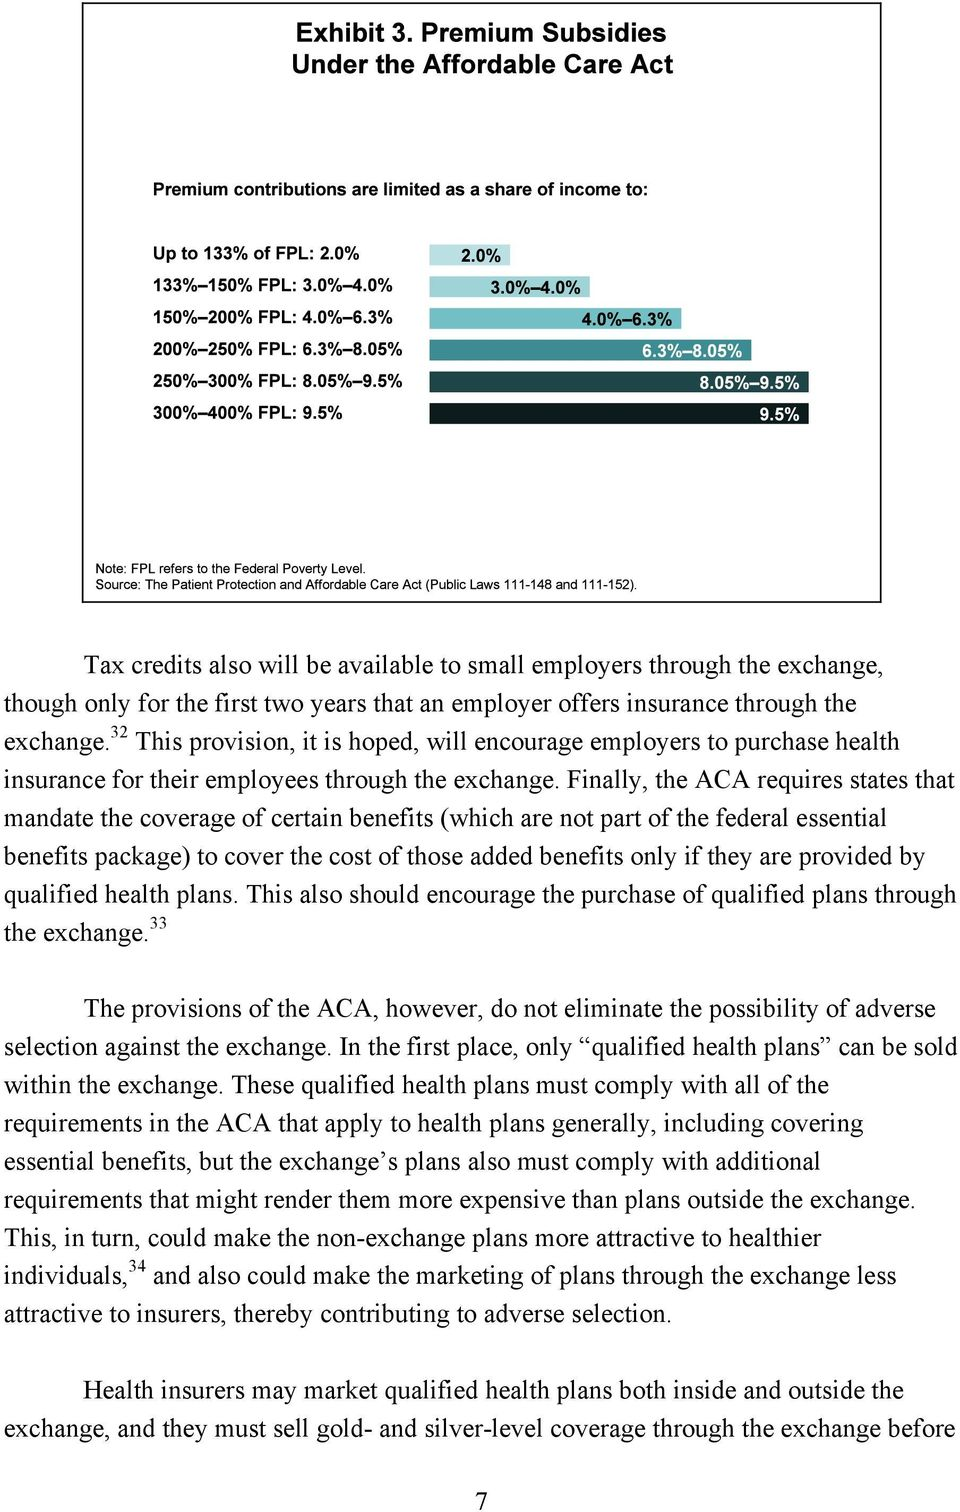 Finally, the ACA requires states that mandate the coverage of certain benefits (which are not part of the federal essential benefits package) to cover the cost of those added benefits only if they